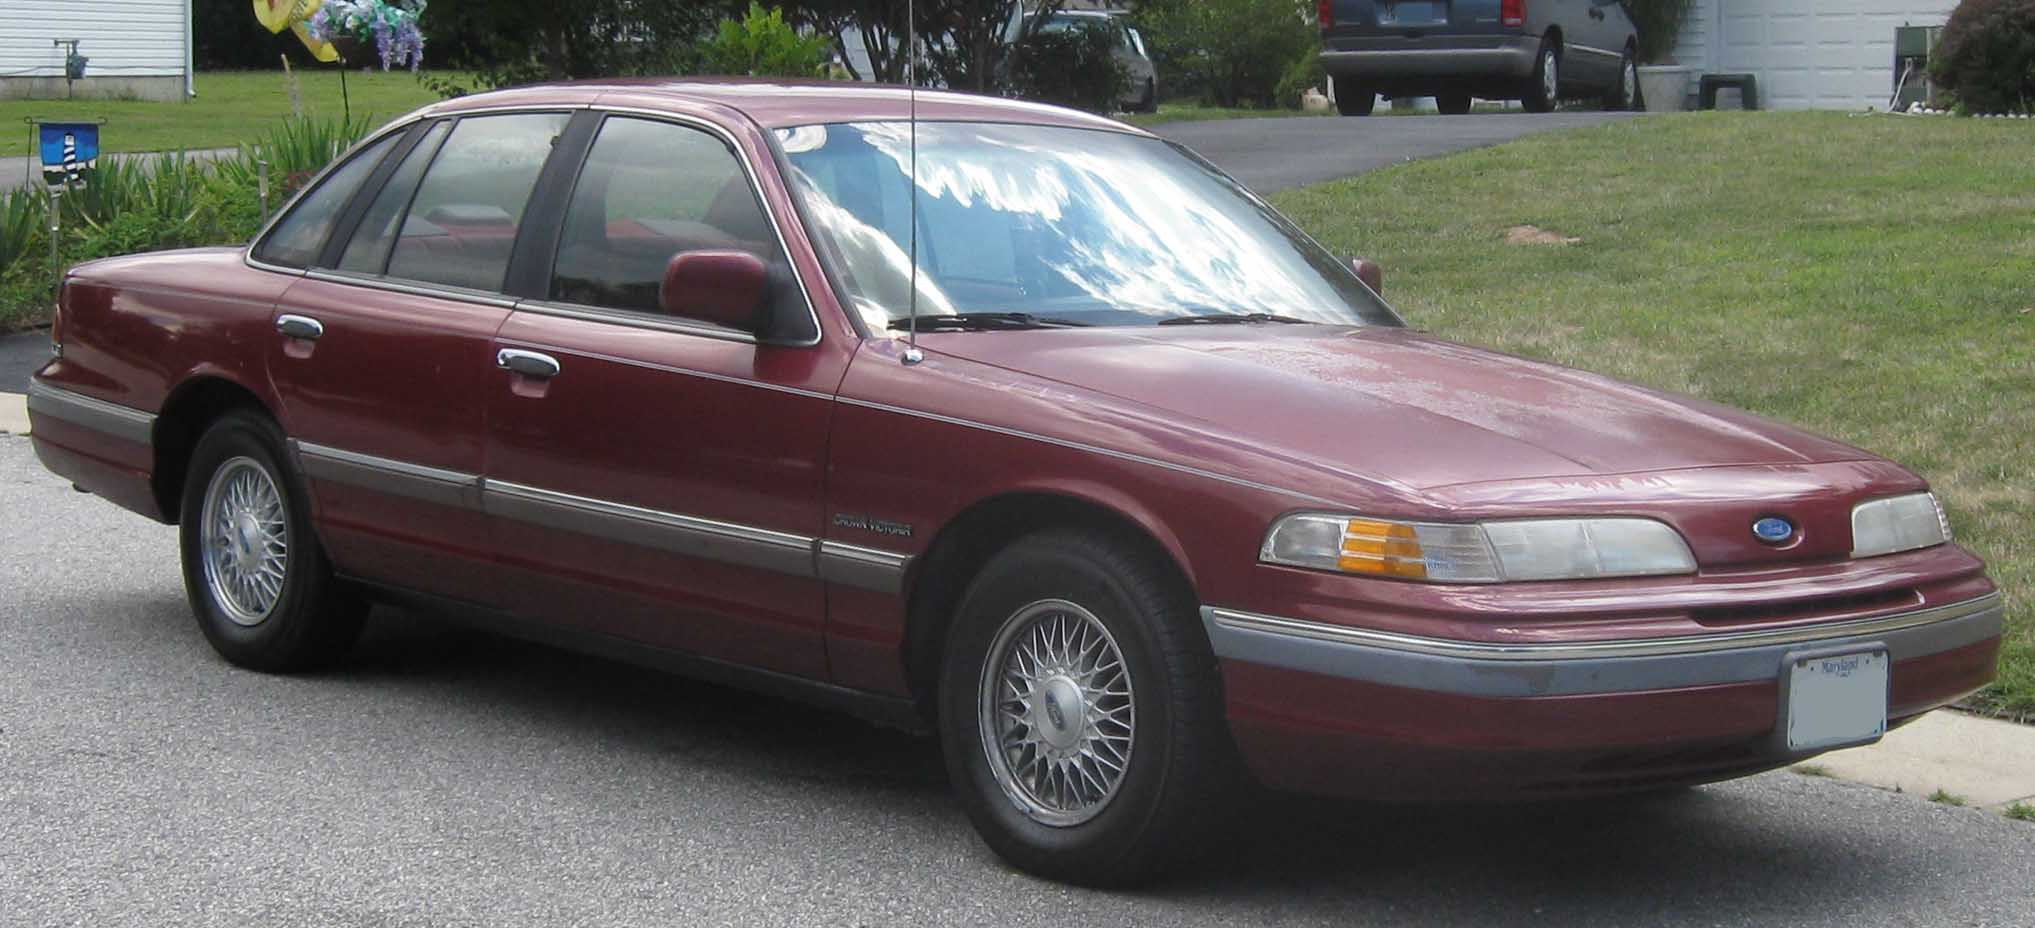 1997 Ford Royale #14